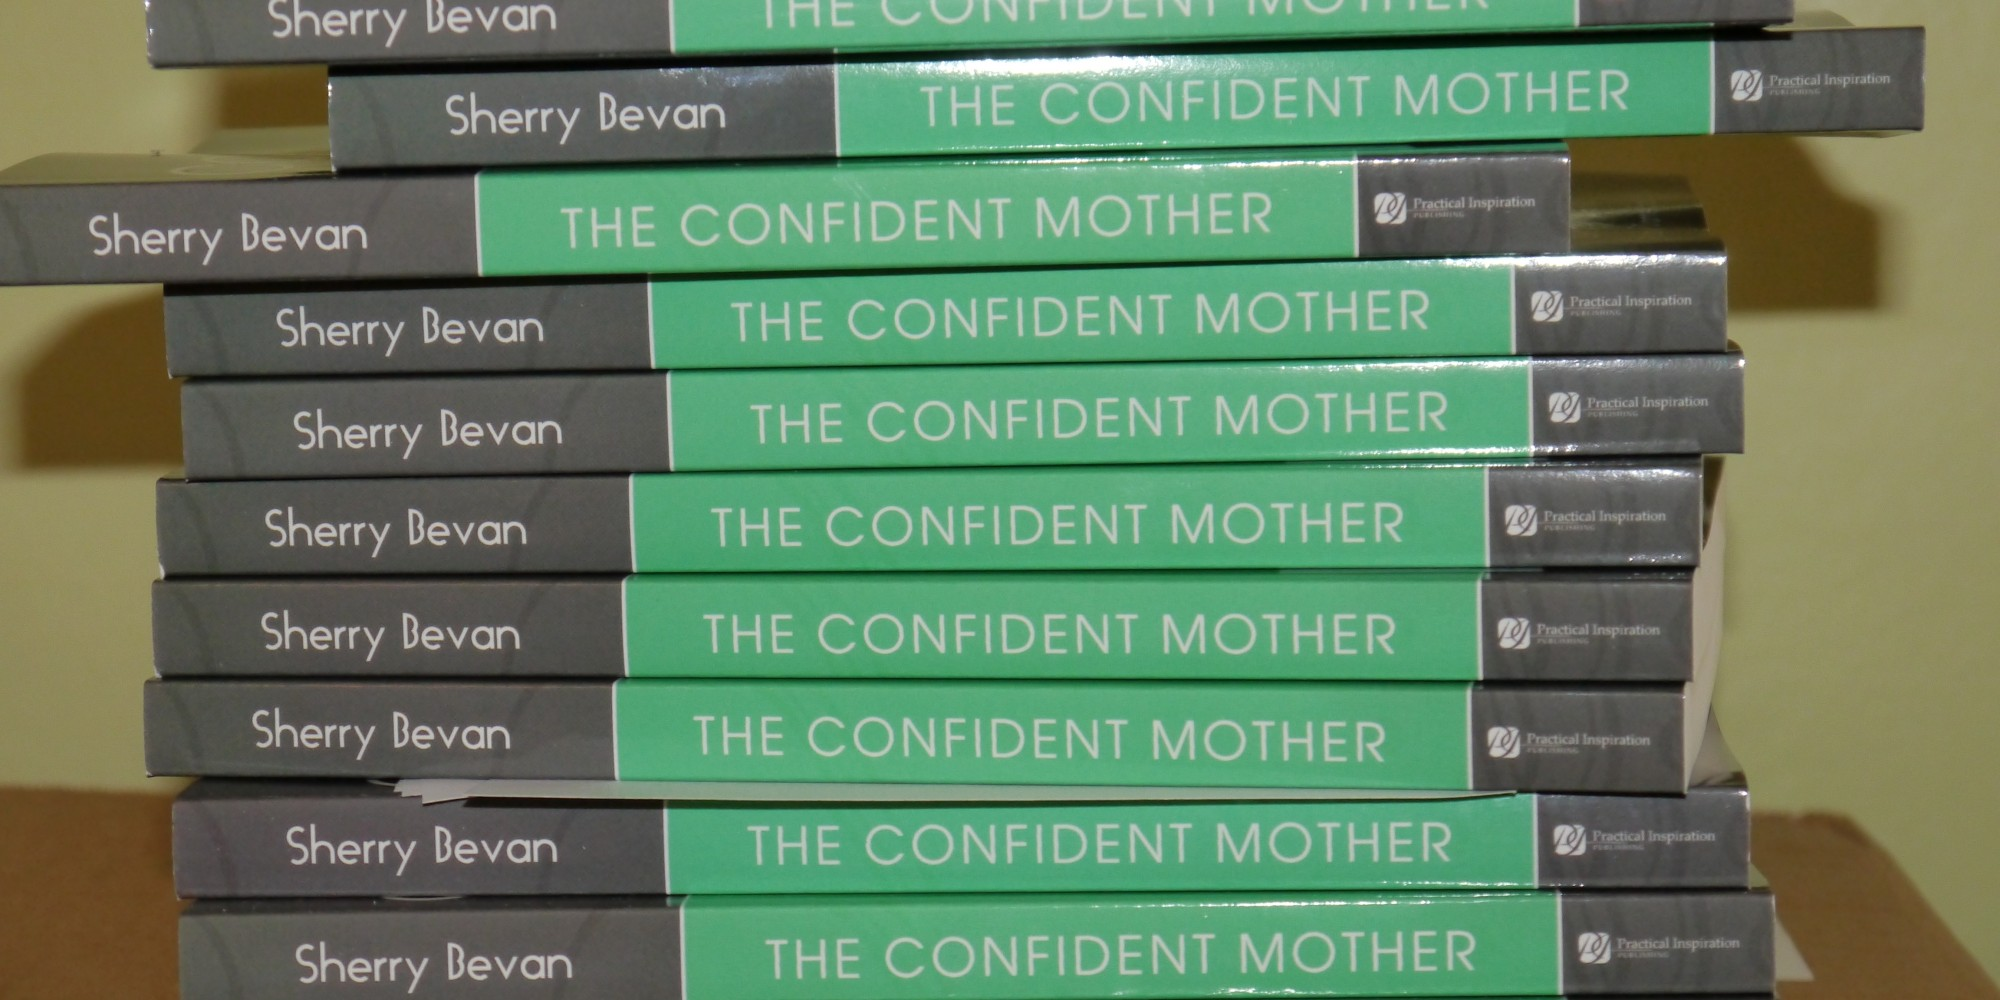 Discover the secrets of The Confident Mother in Sherry's book